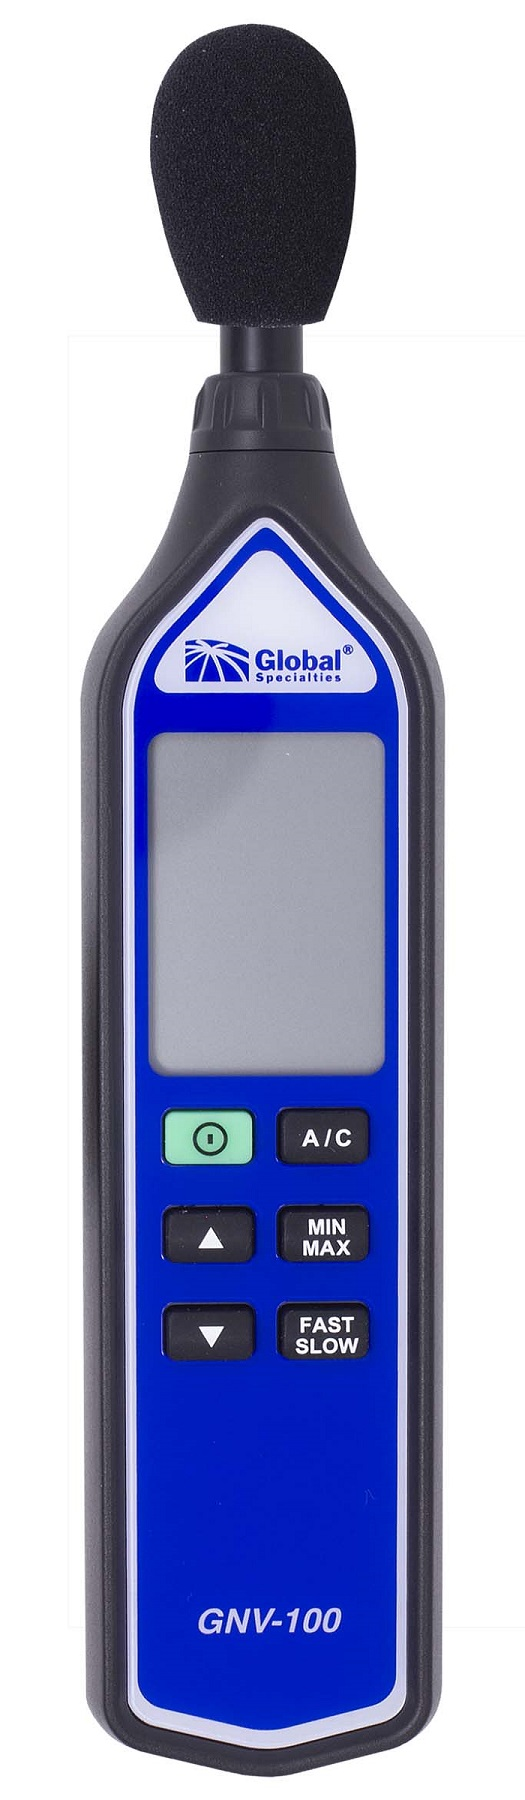 Global Specialties GNV-100 Sound Level Meter, Class 2 Photo